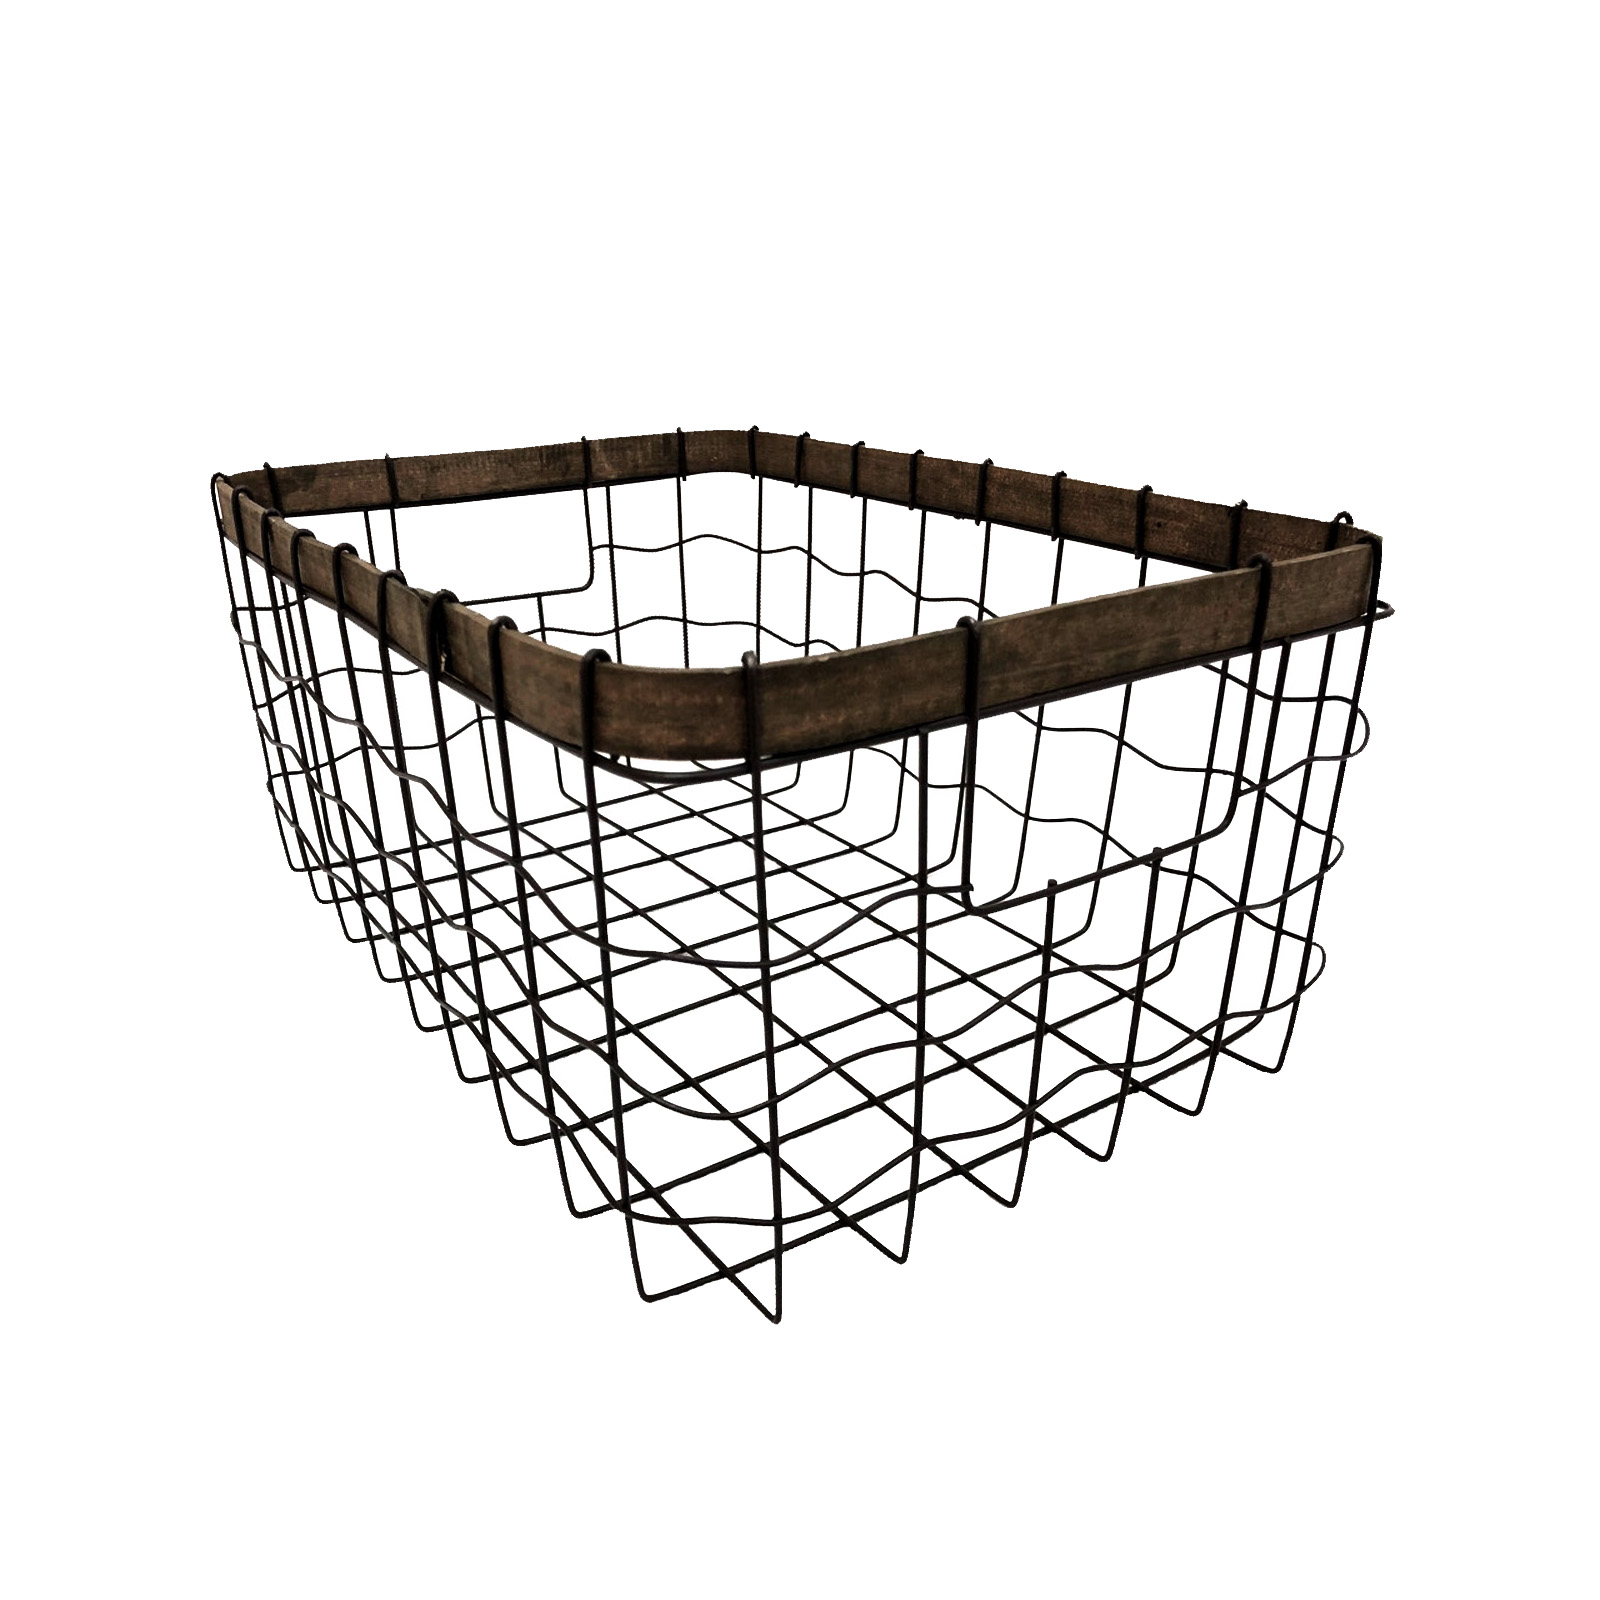 Shop for the large metal wire basket by ashland® at michaels